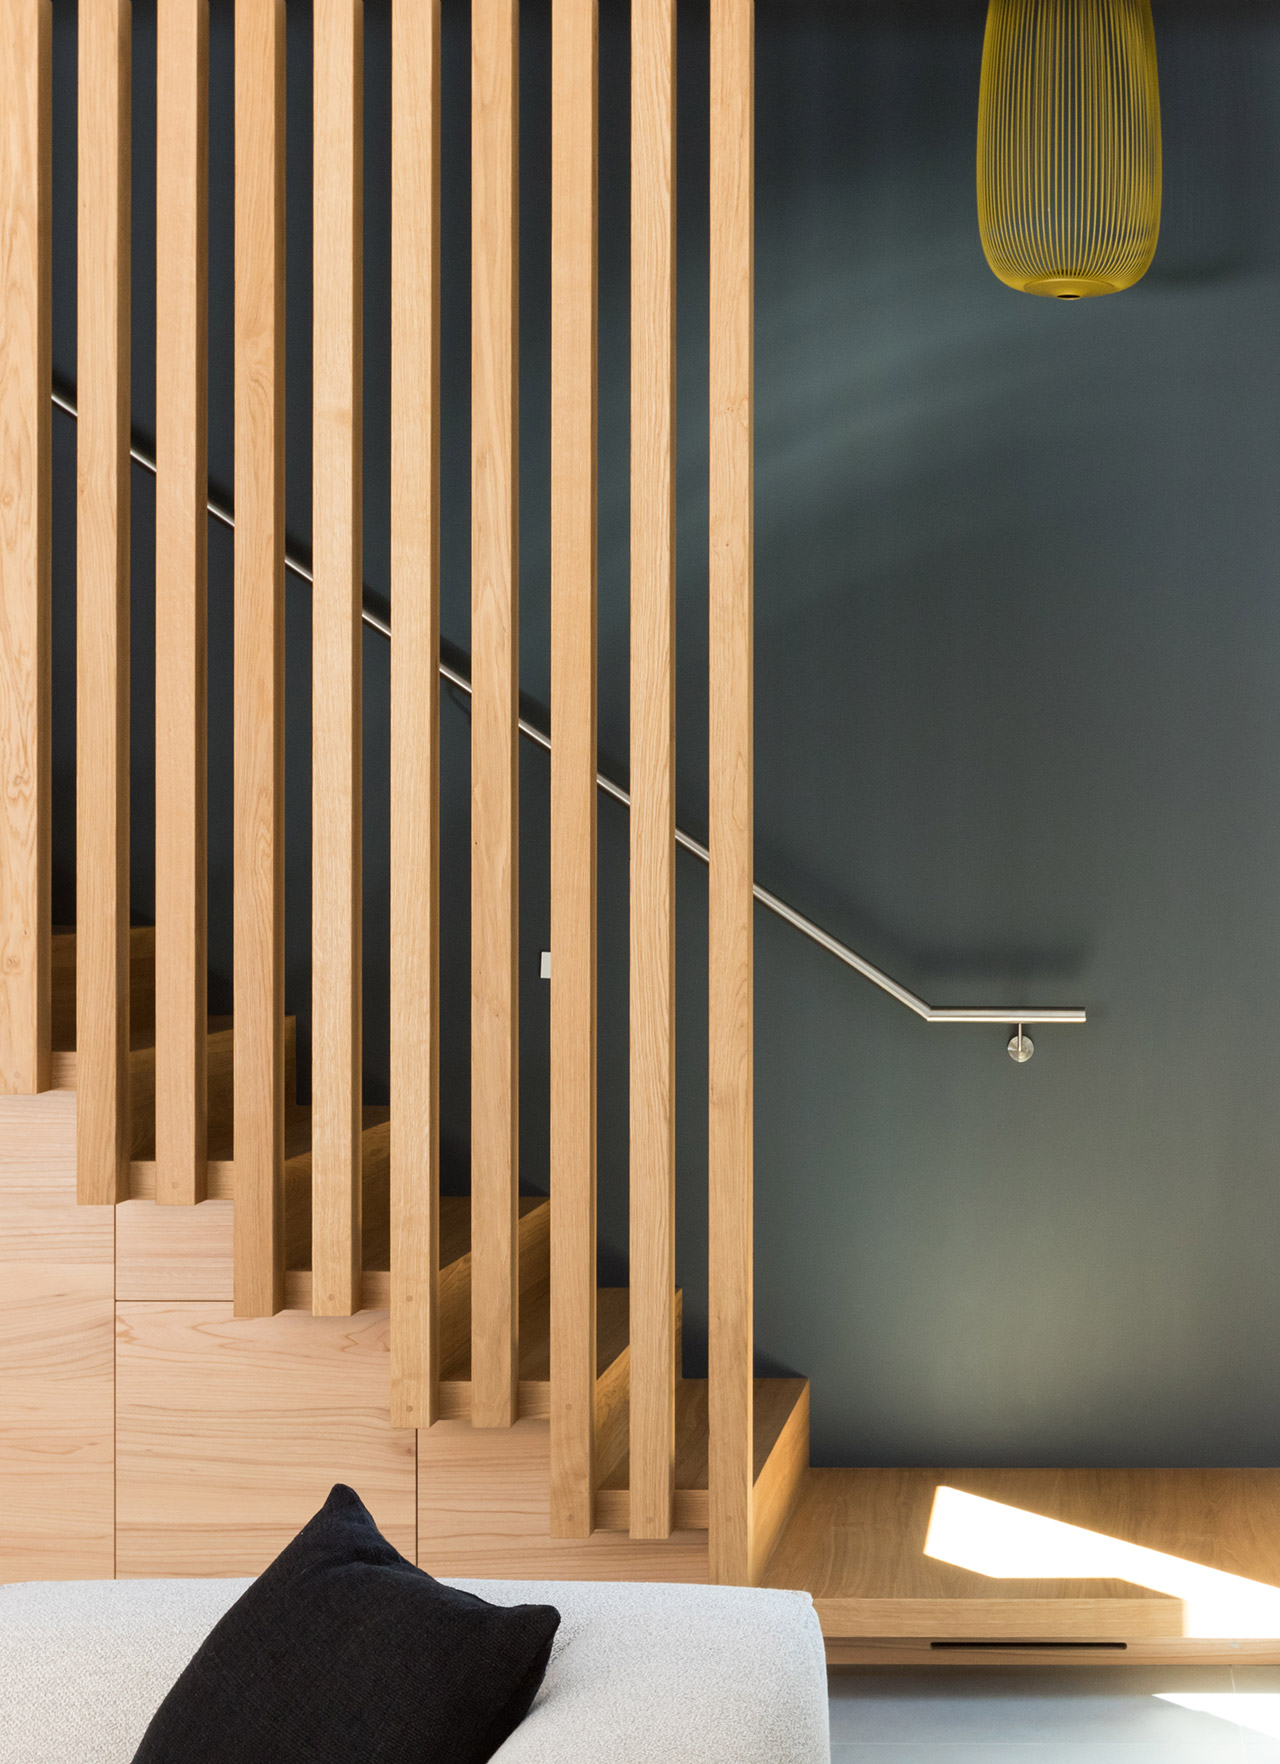 Wooden staircase set against deep green wall.